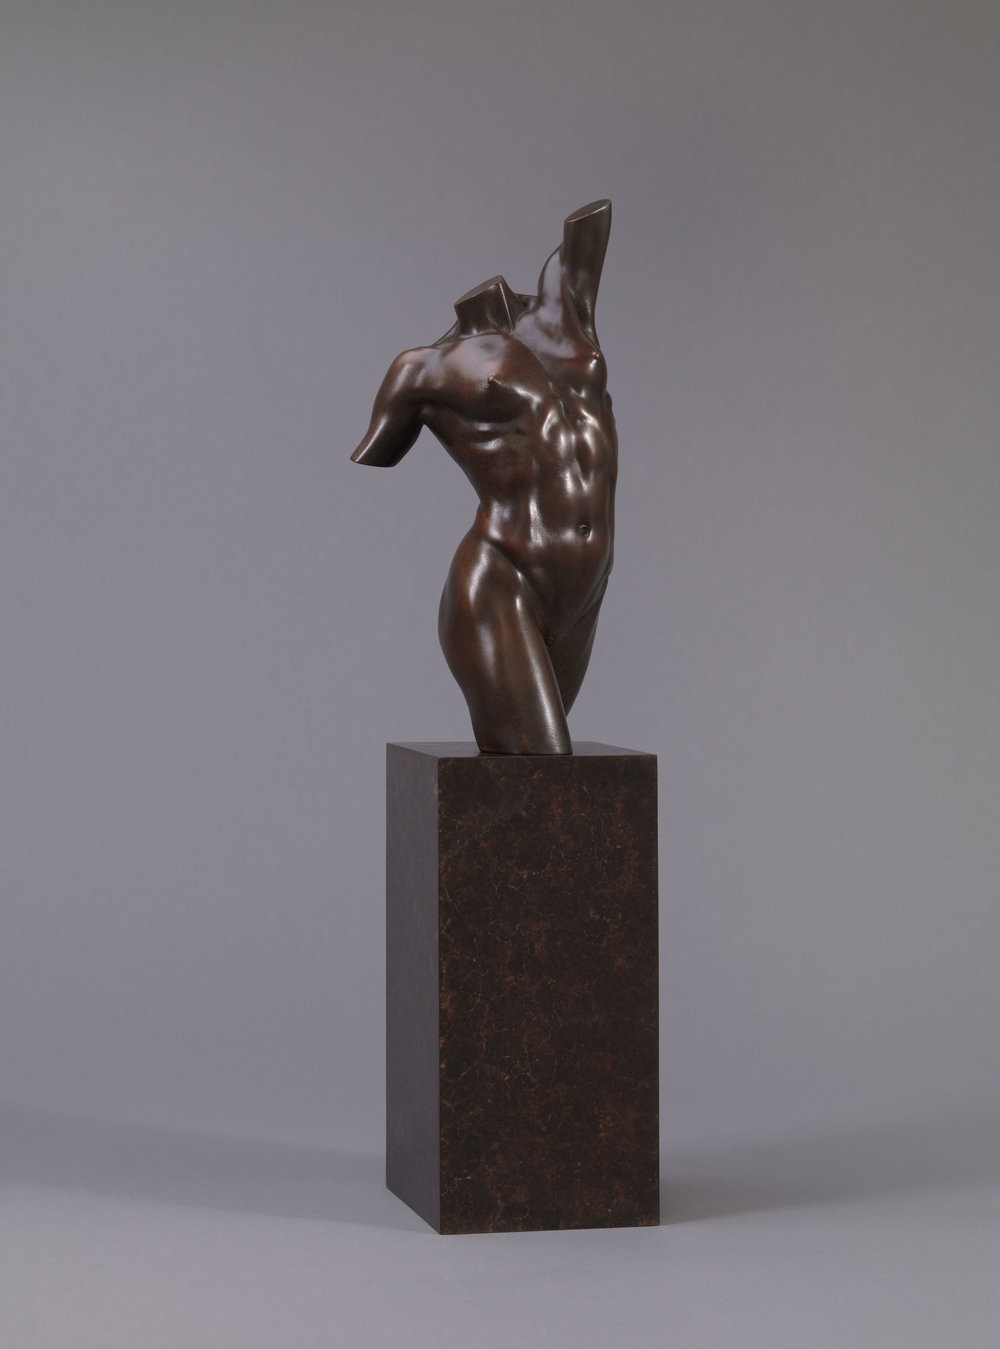 6. Artemis Maquette by Nick Bibby, Edition of 12, 19 x 5 x 5 inches (48 x 13 x 13cm).jpg